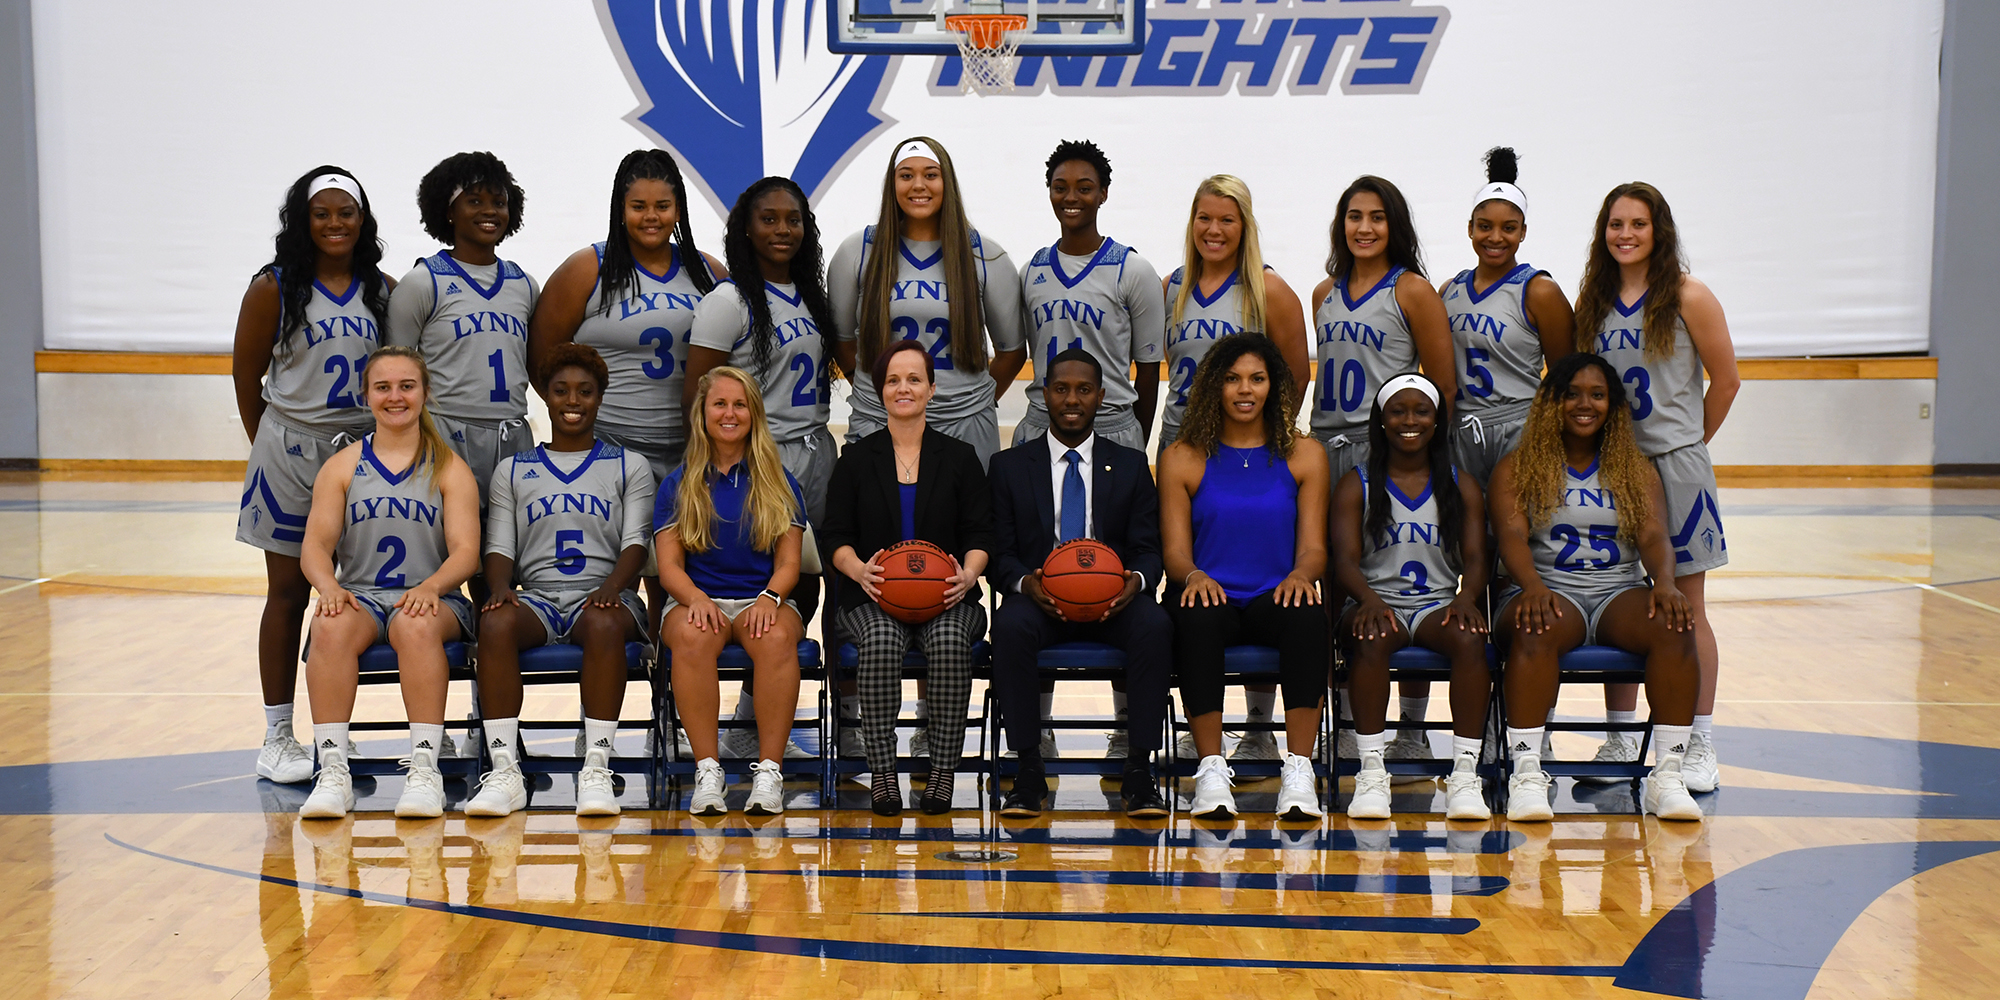 SEASON PREVIEW: 2018-19 #LynnWBK